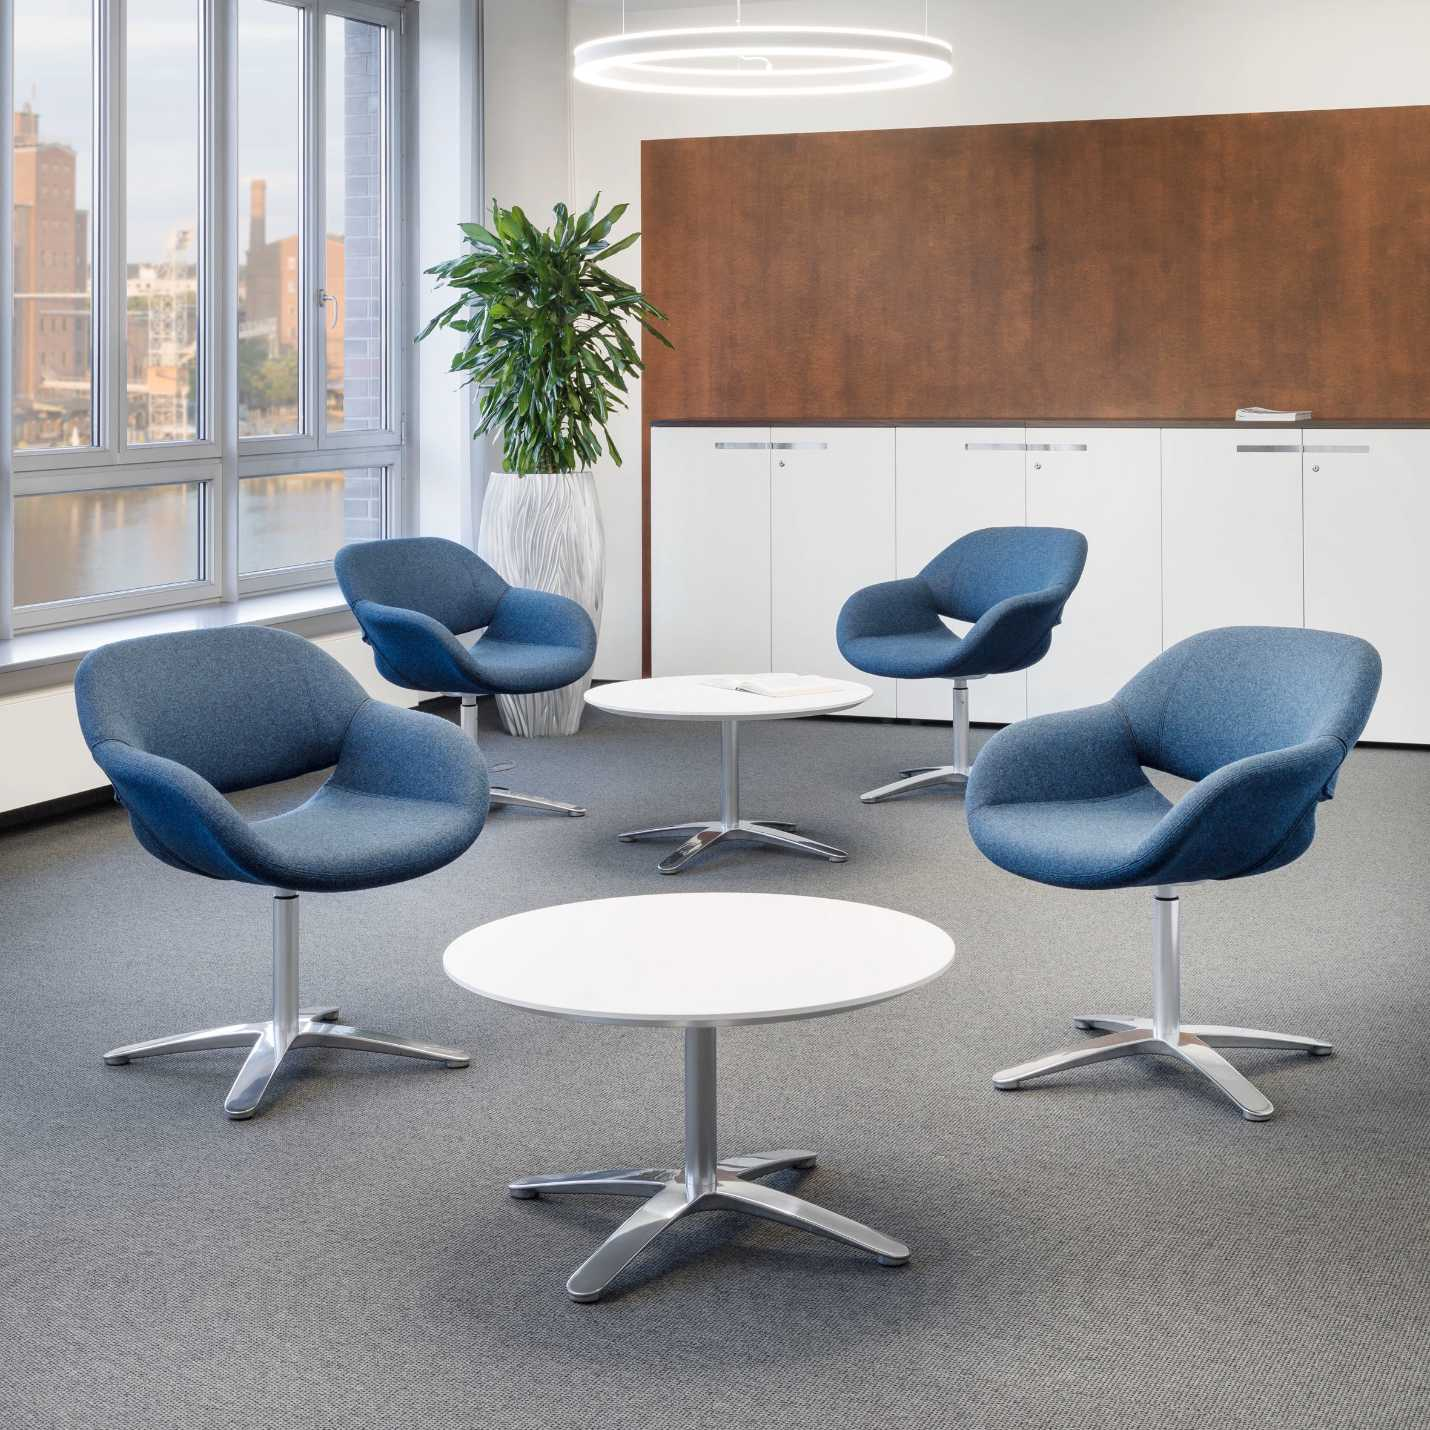 Volpe 8200 Chair (Seating)